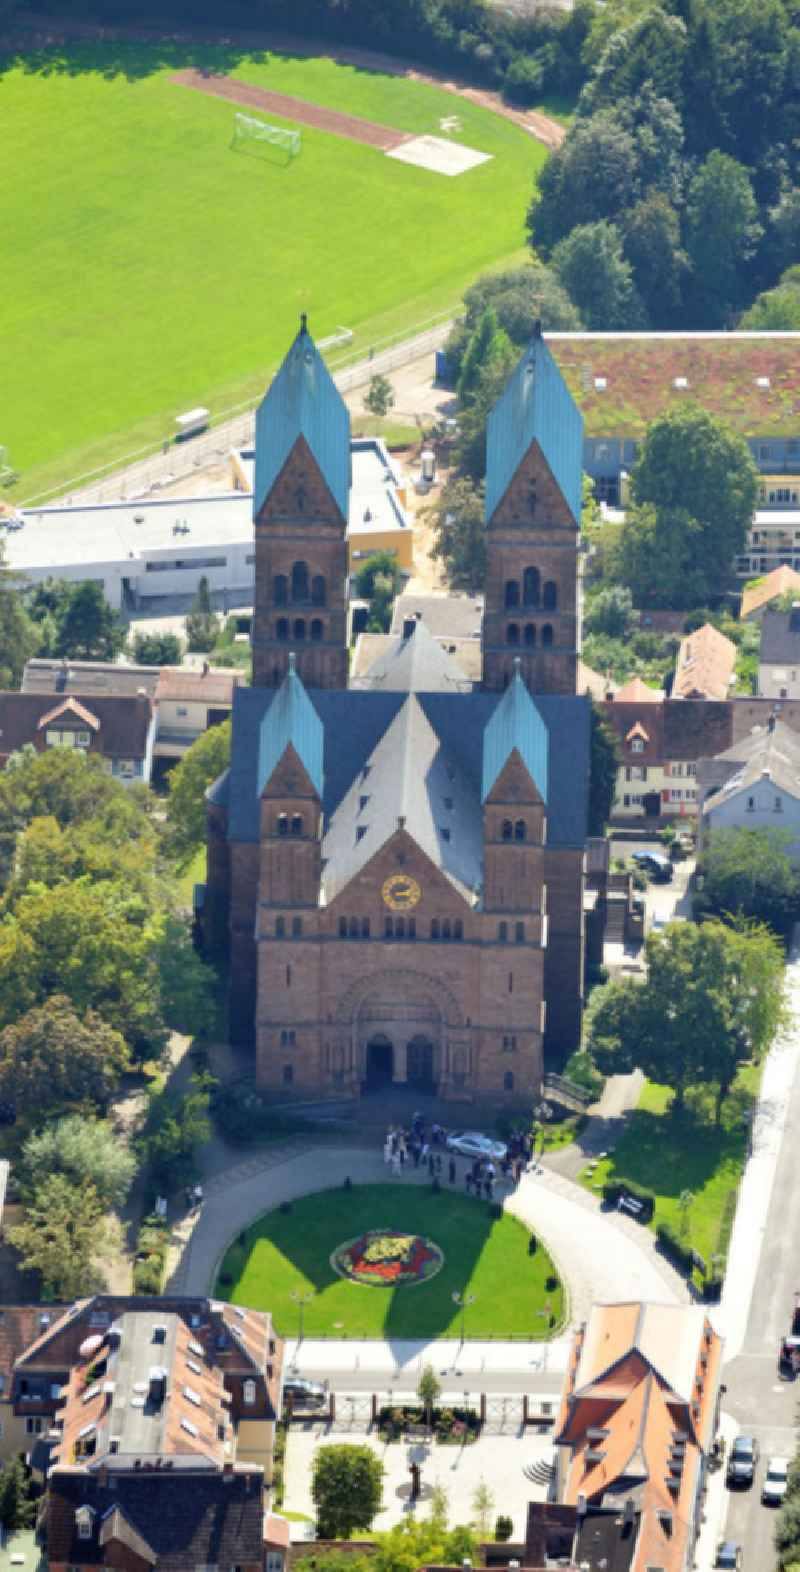 Erlöserkirche in Bad Homburg in Hessen